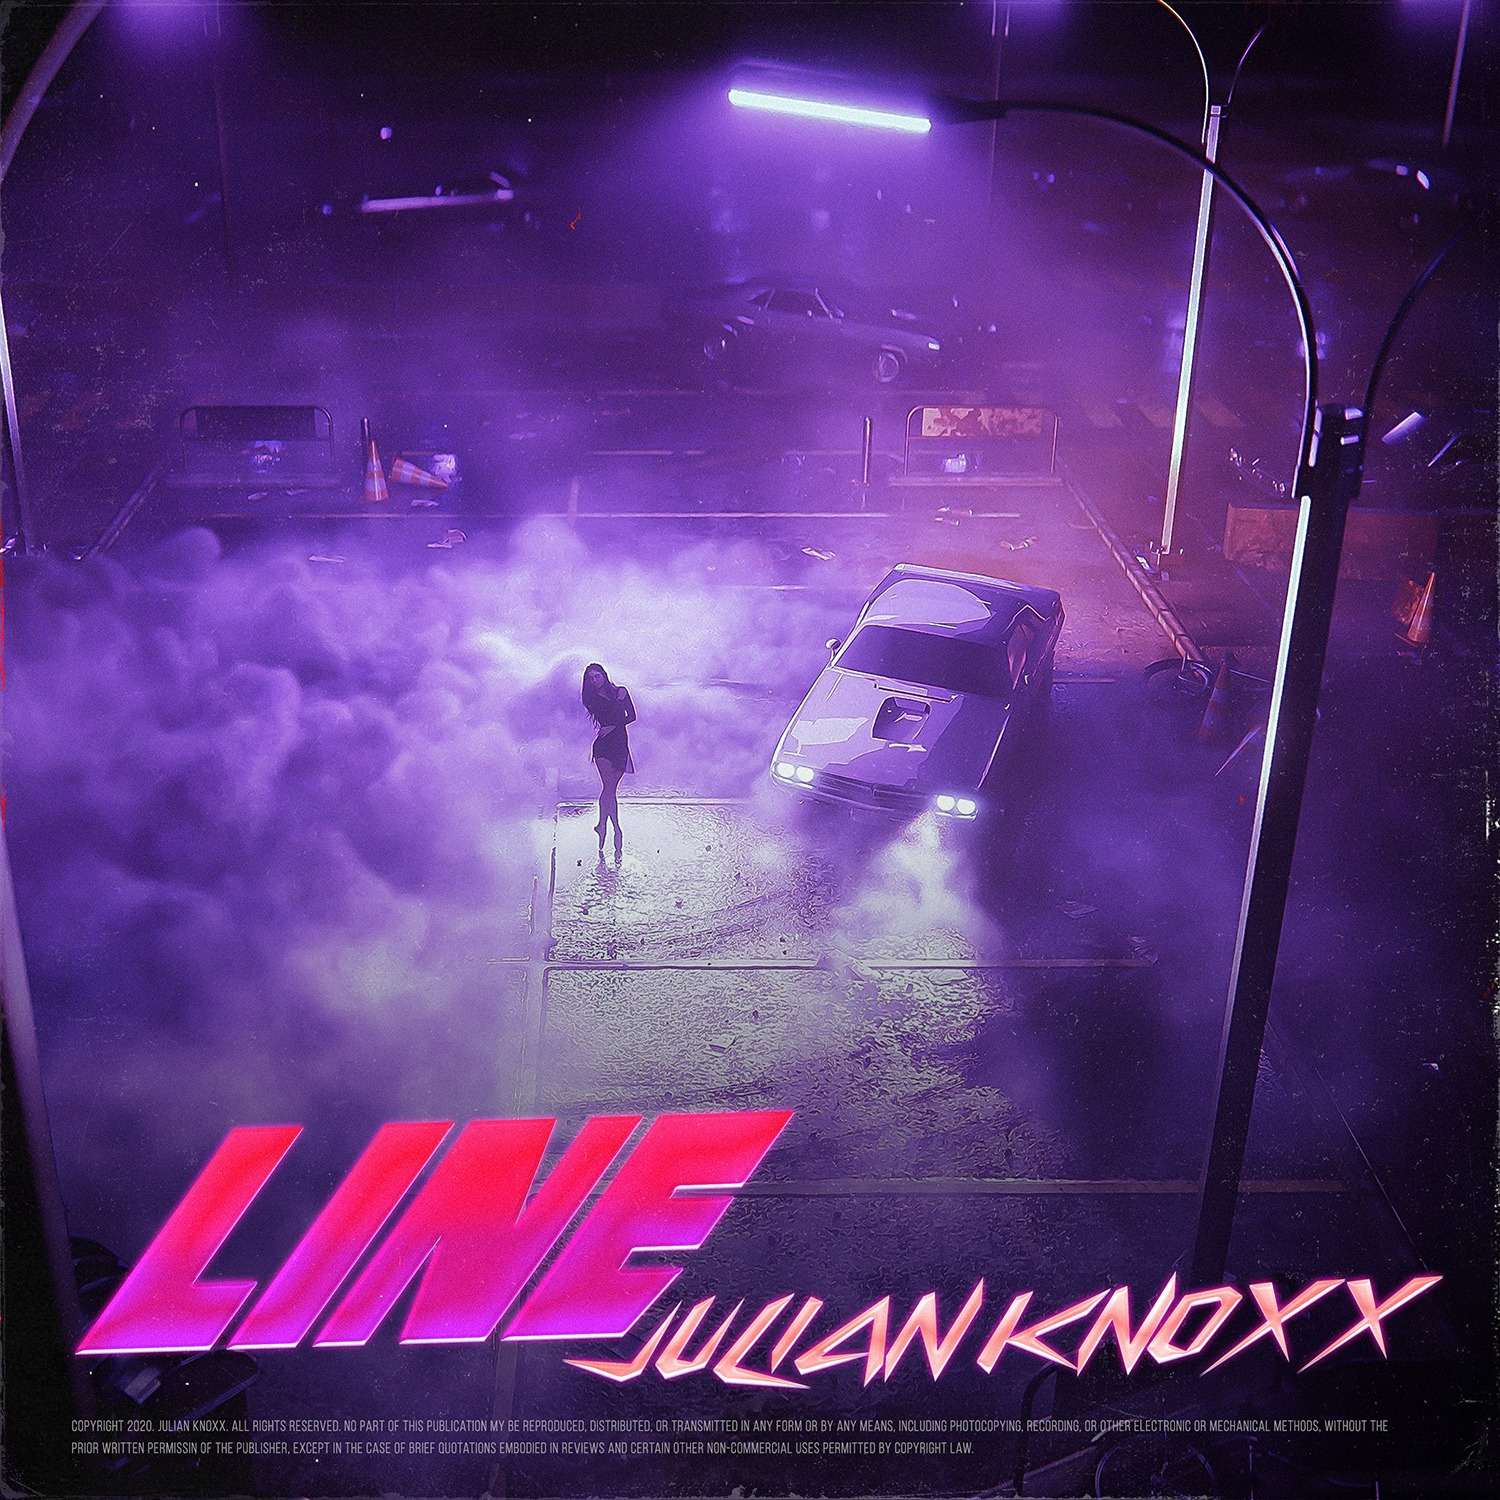 JULIAN KNOXX' Latest Banger Is Pure Fire 'Line'